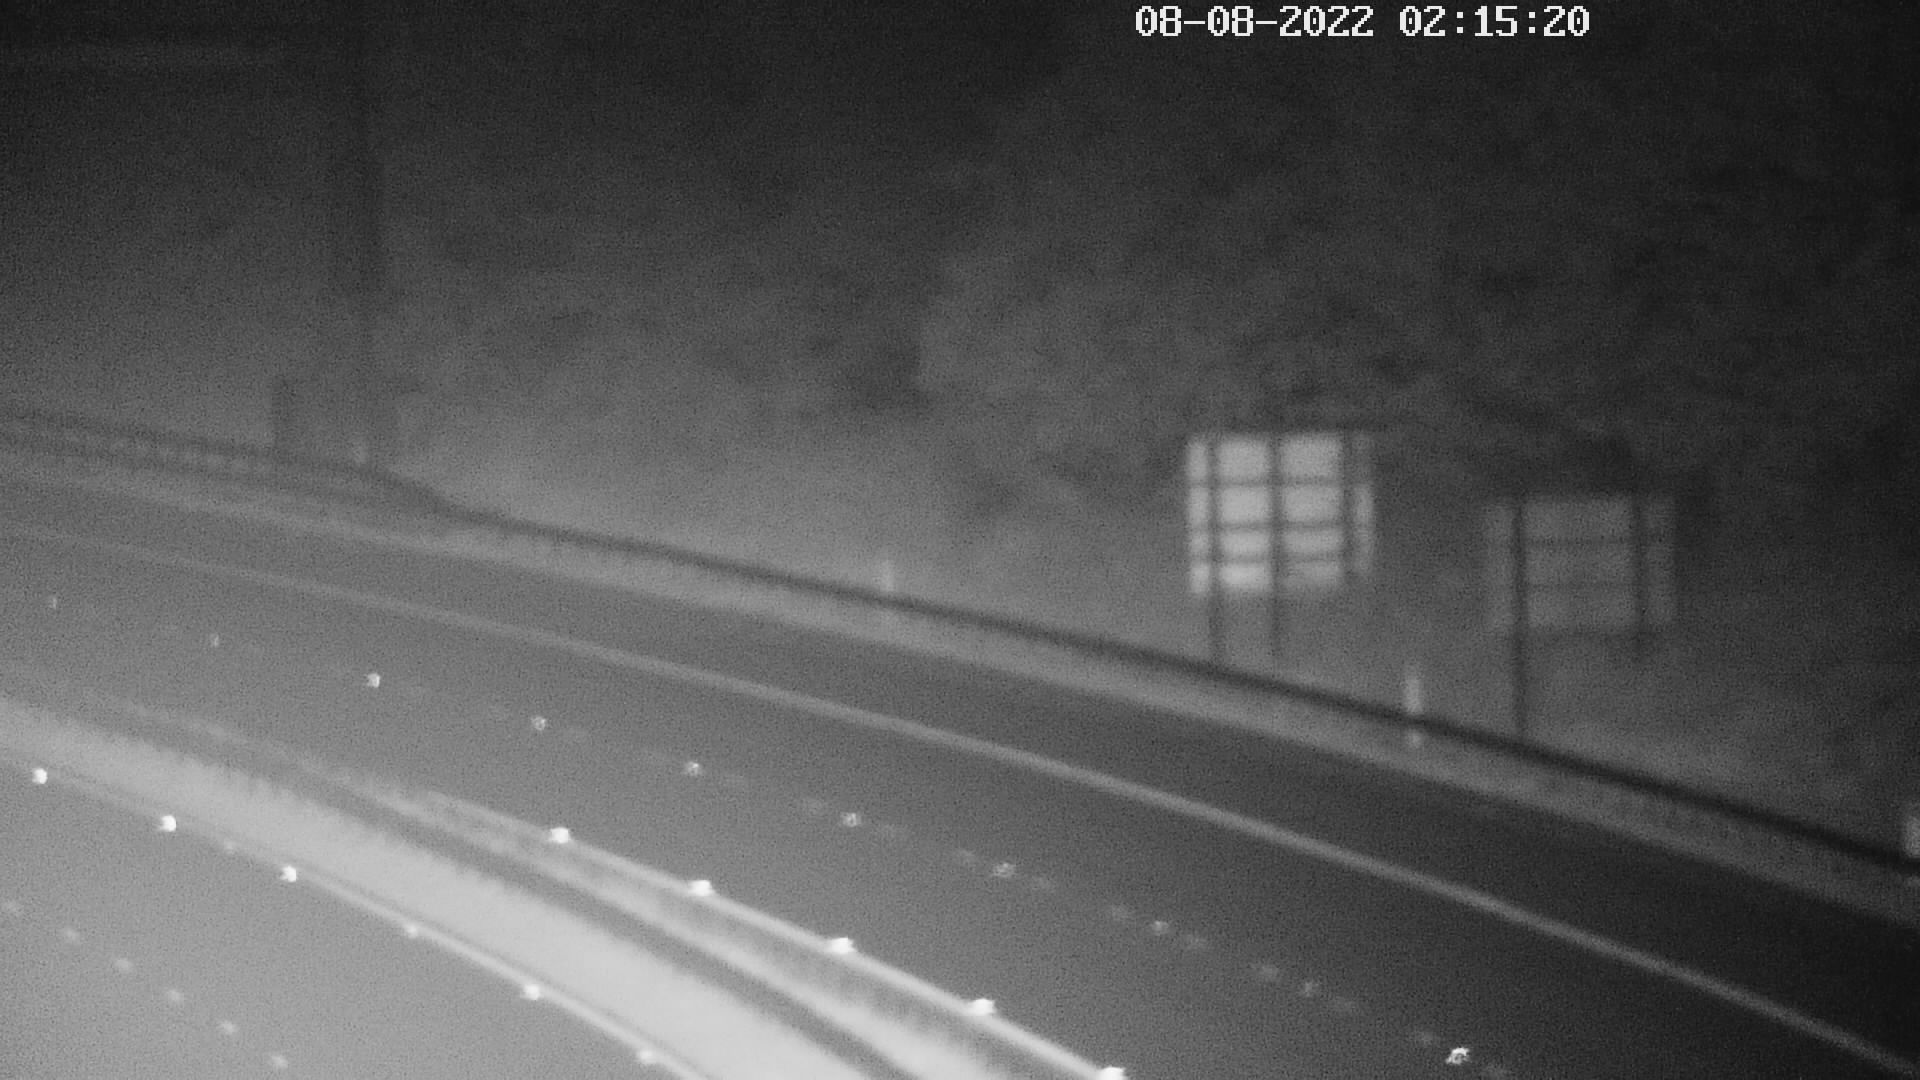 CCTV Camera image for M1 Sprucefield